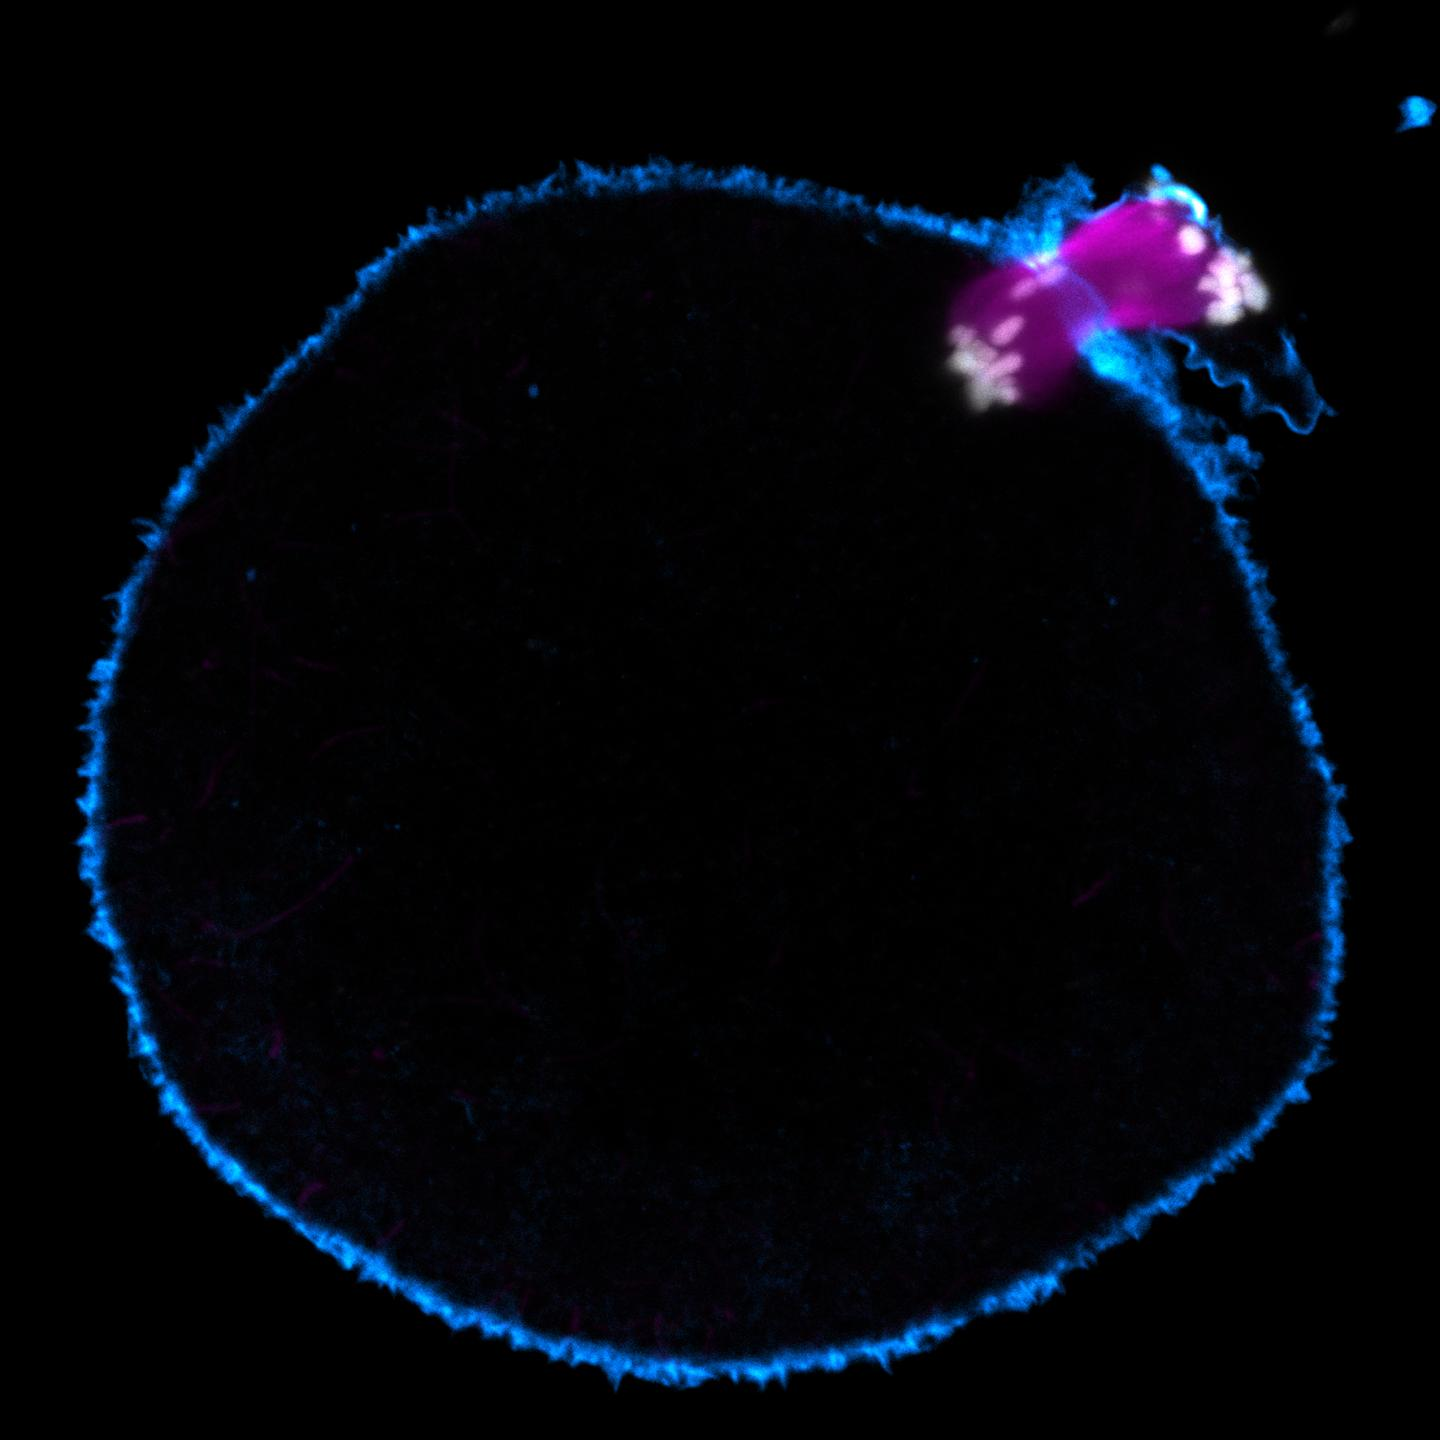 Chromosome segregation error during in human oocyte (Actin in cyan; Chromosomes in grey; Microtubules in magenta) - Whole oocyte. This material relates to a paper that appeared in the June 5, 2015 issue of Science, published by AAAS. The paper, by Zuzana Holubcova at the Medical Research Council in Cambridge, UK, and colleagues was titled, 'Error-prone chromosome-mediated spindle assembly favors chromosome segregation defects in human oocytes.'